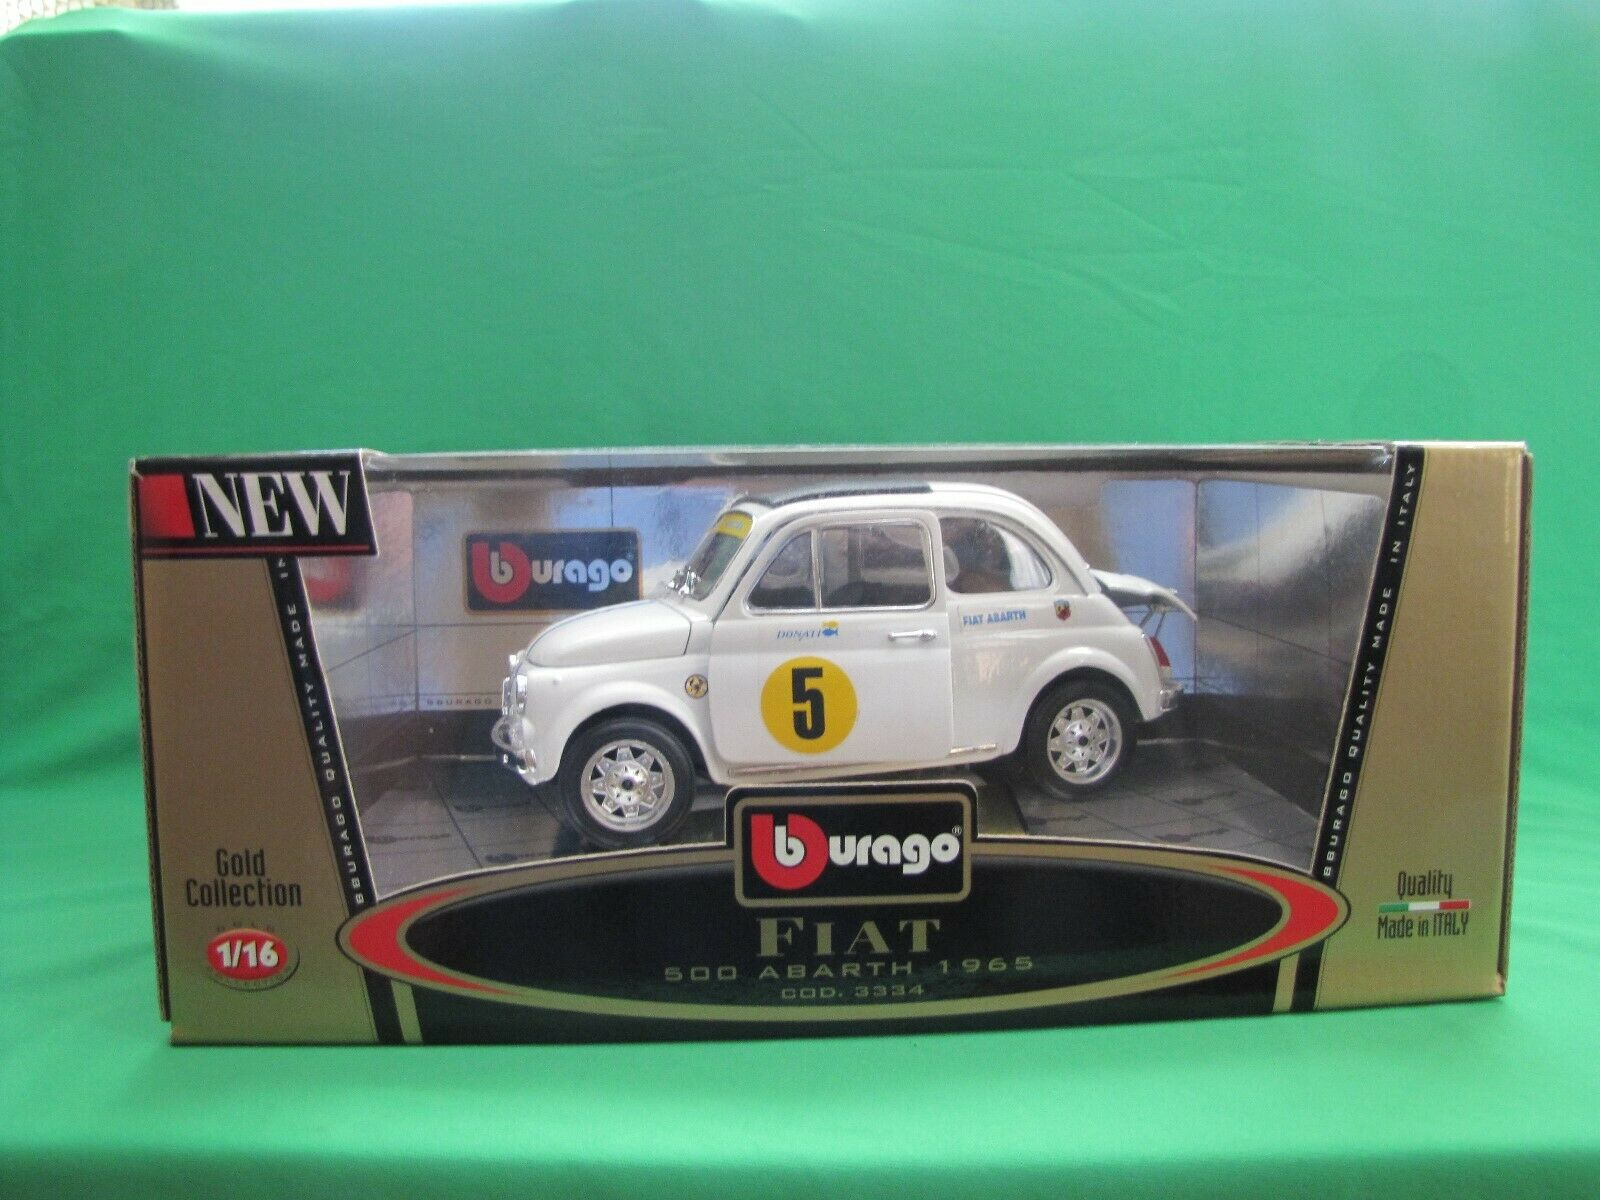 BURAGO FIAT 500 ABARTH 1965 gold COLLECTION 1 16